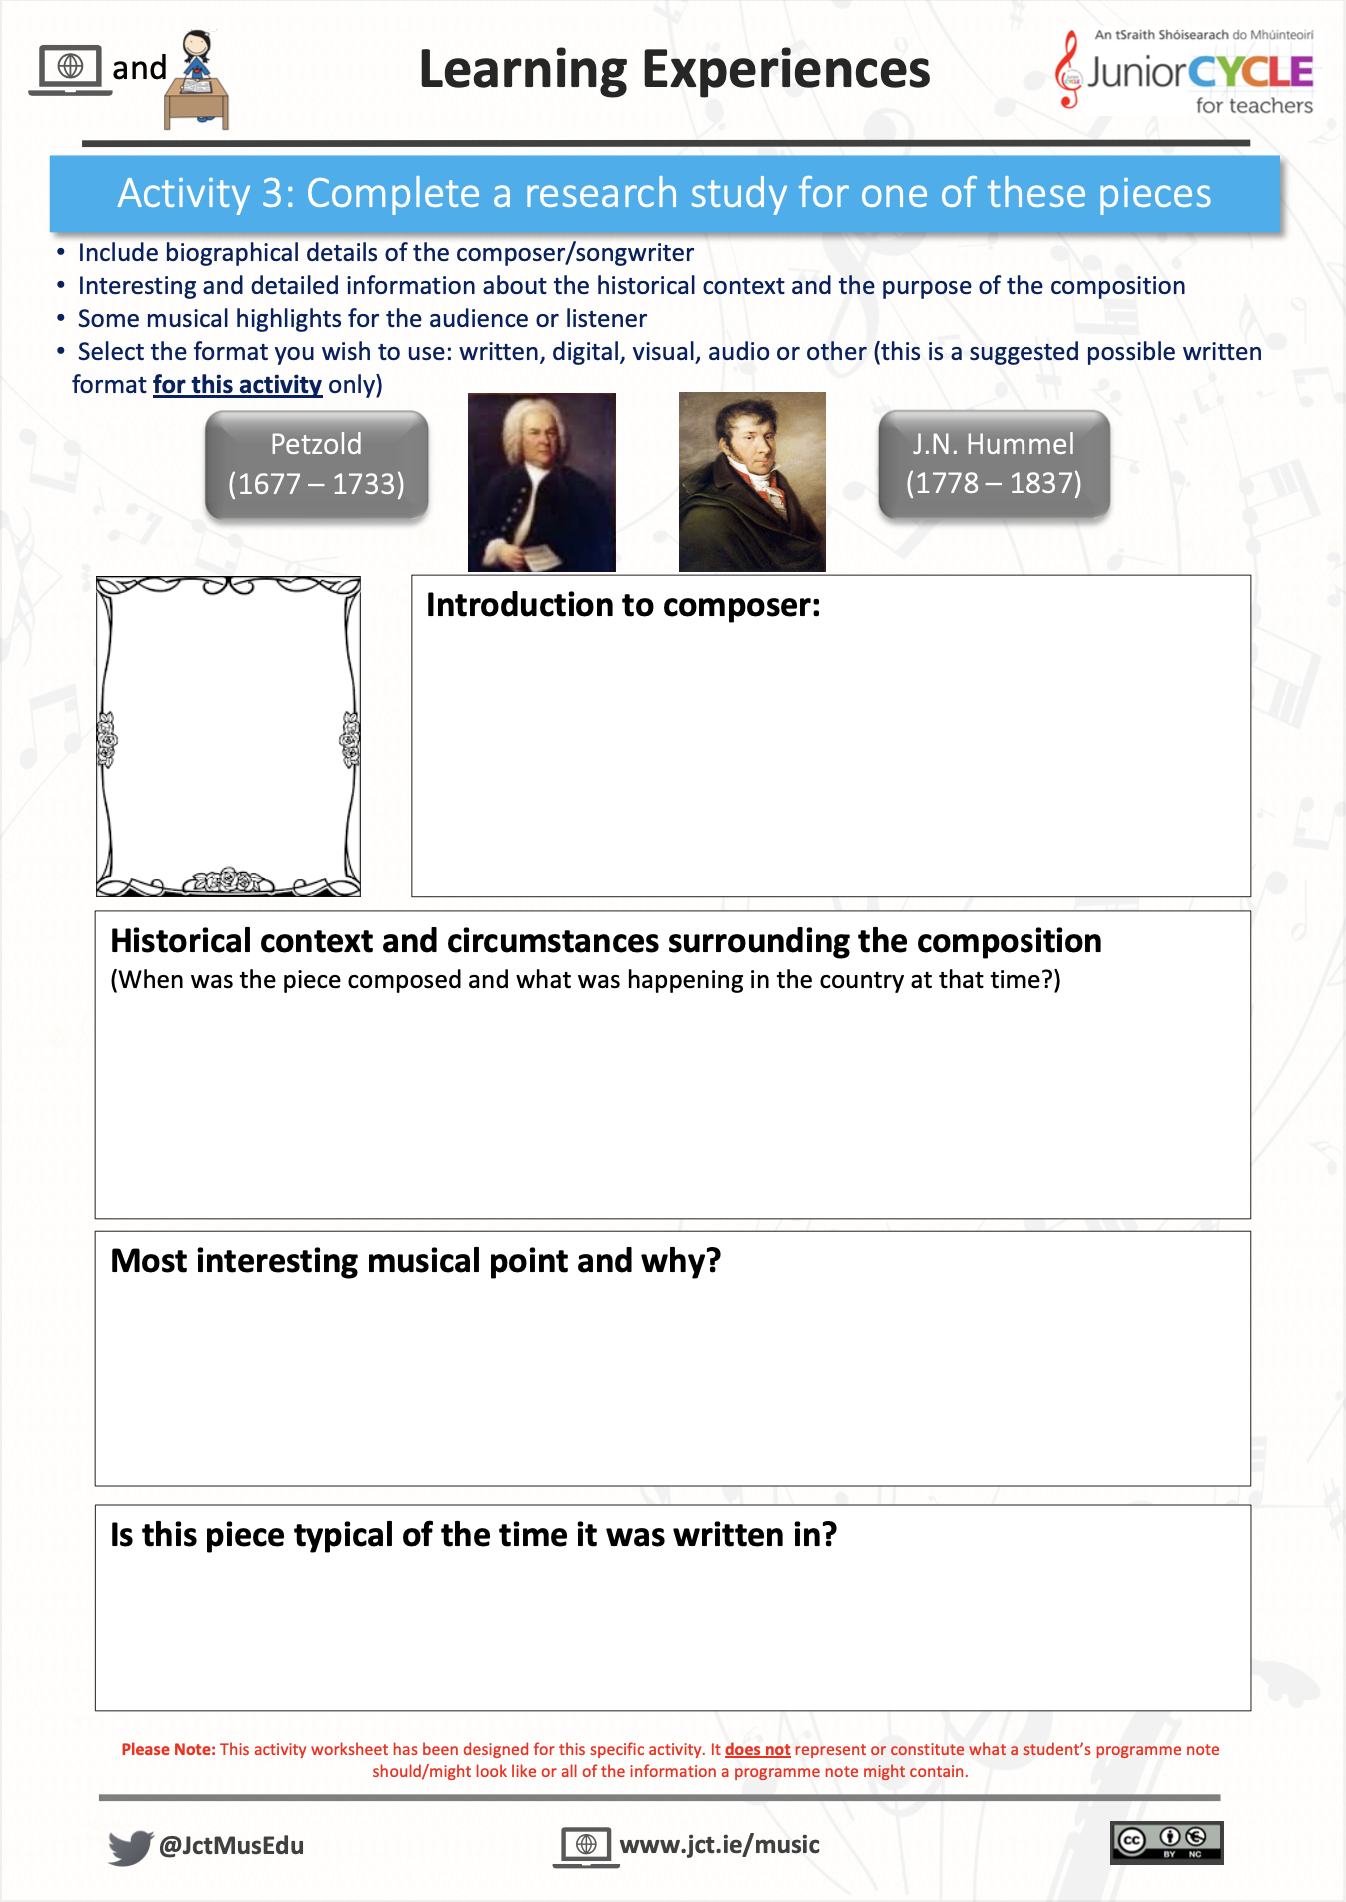 Online Learning Research Skills - Activity 3 PDF